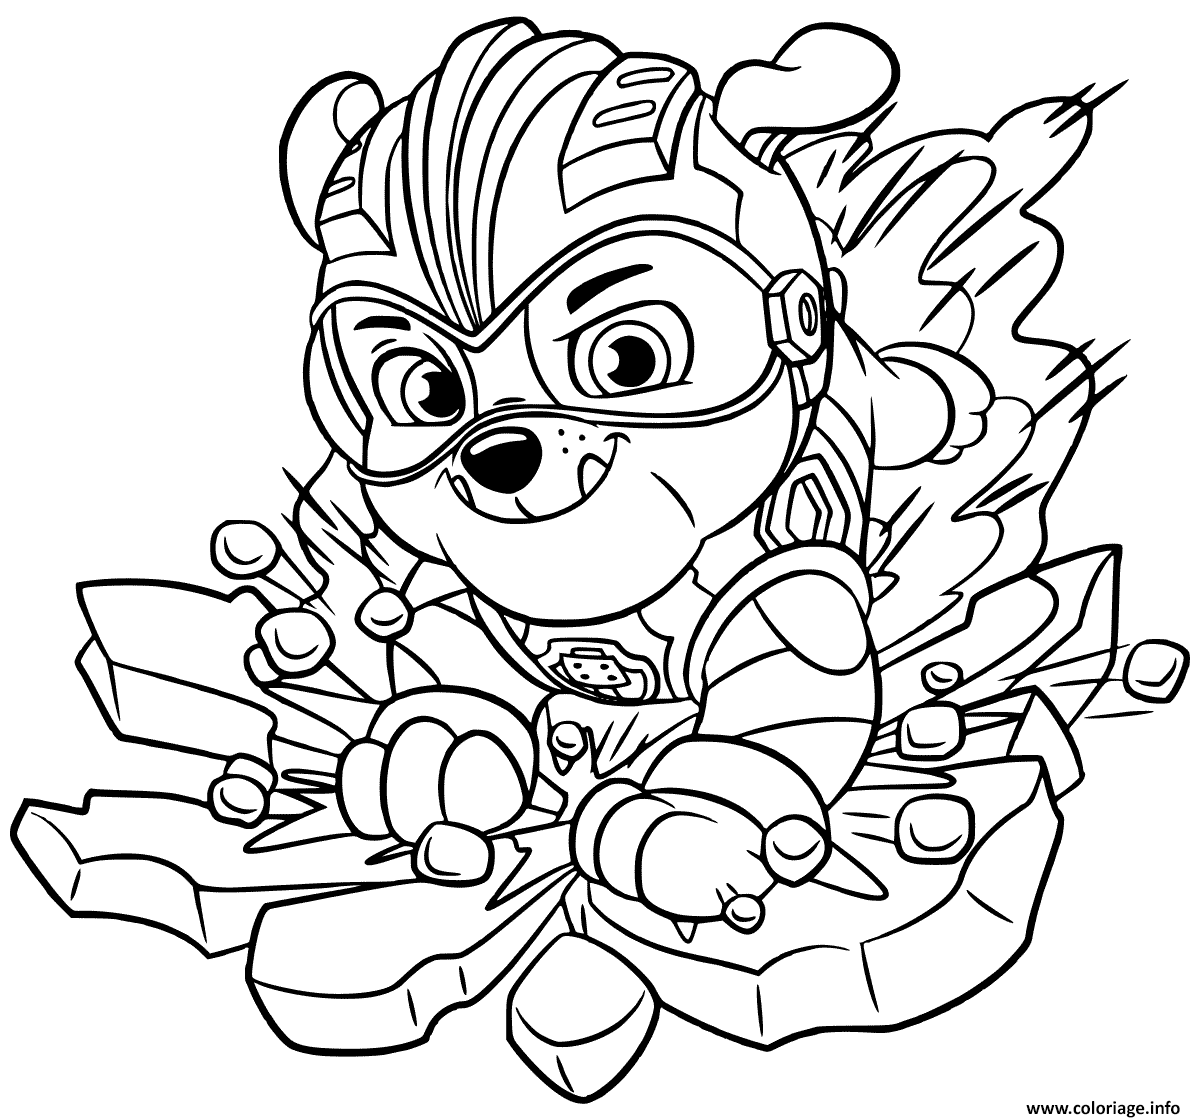 Coloriage Mighty Pups Rubbles Dessin Pat Patrouille A Imprimer